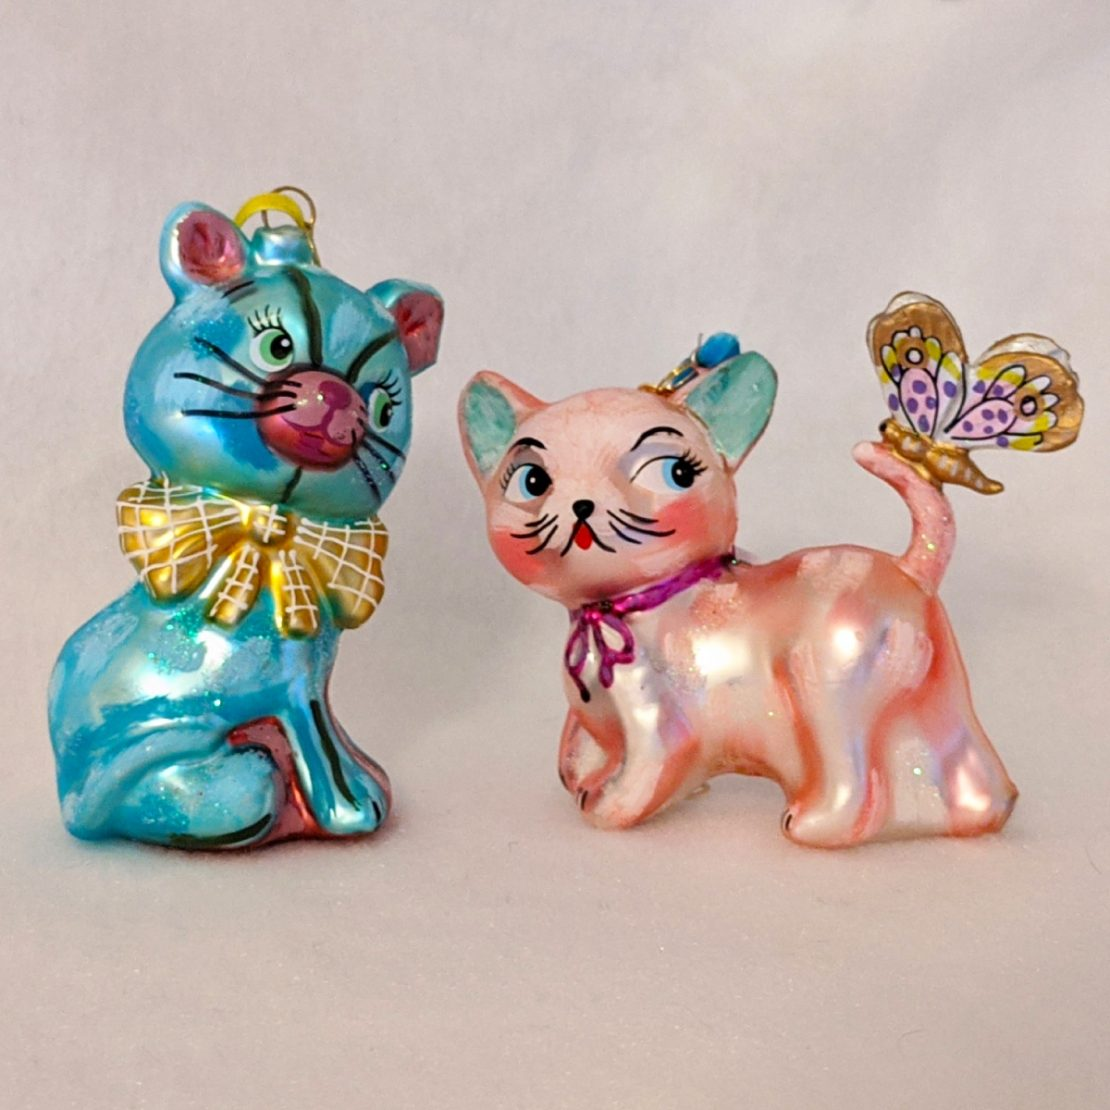 Retro-chic Cat Holiday Ornaments